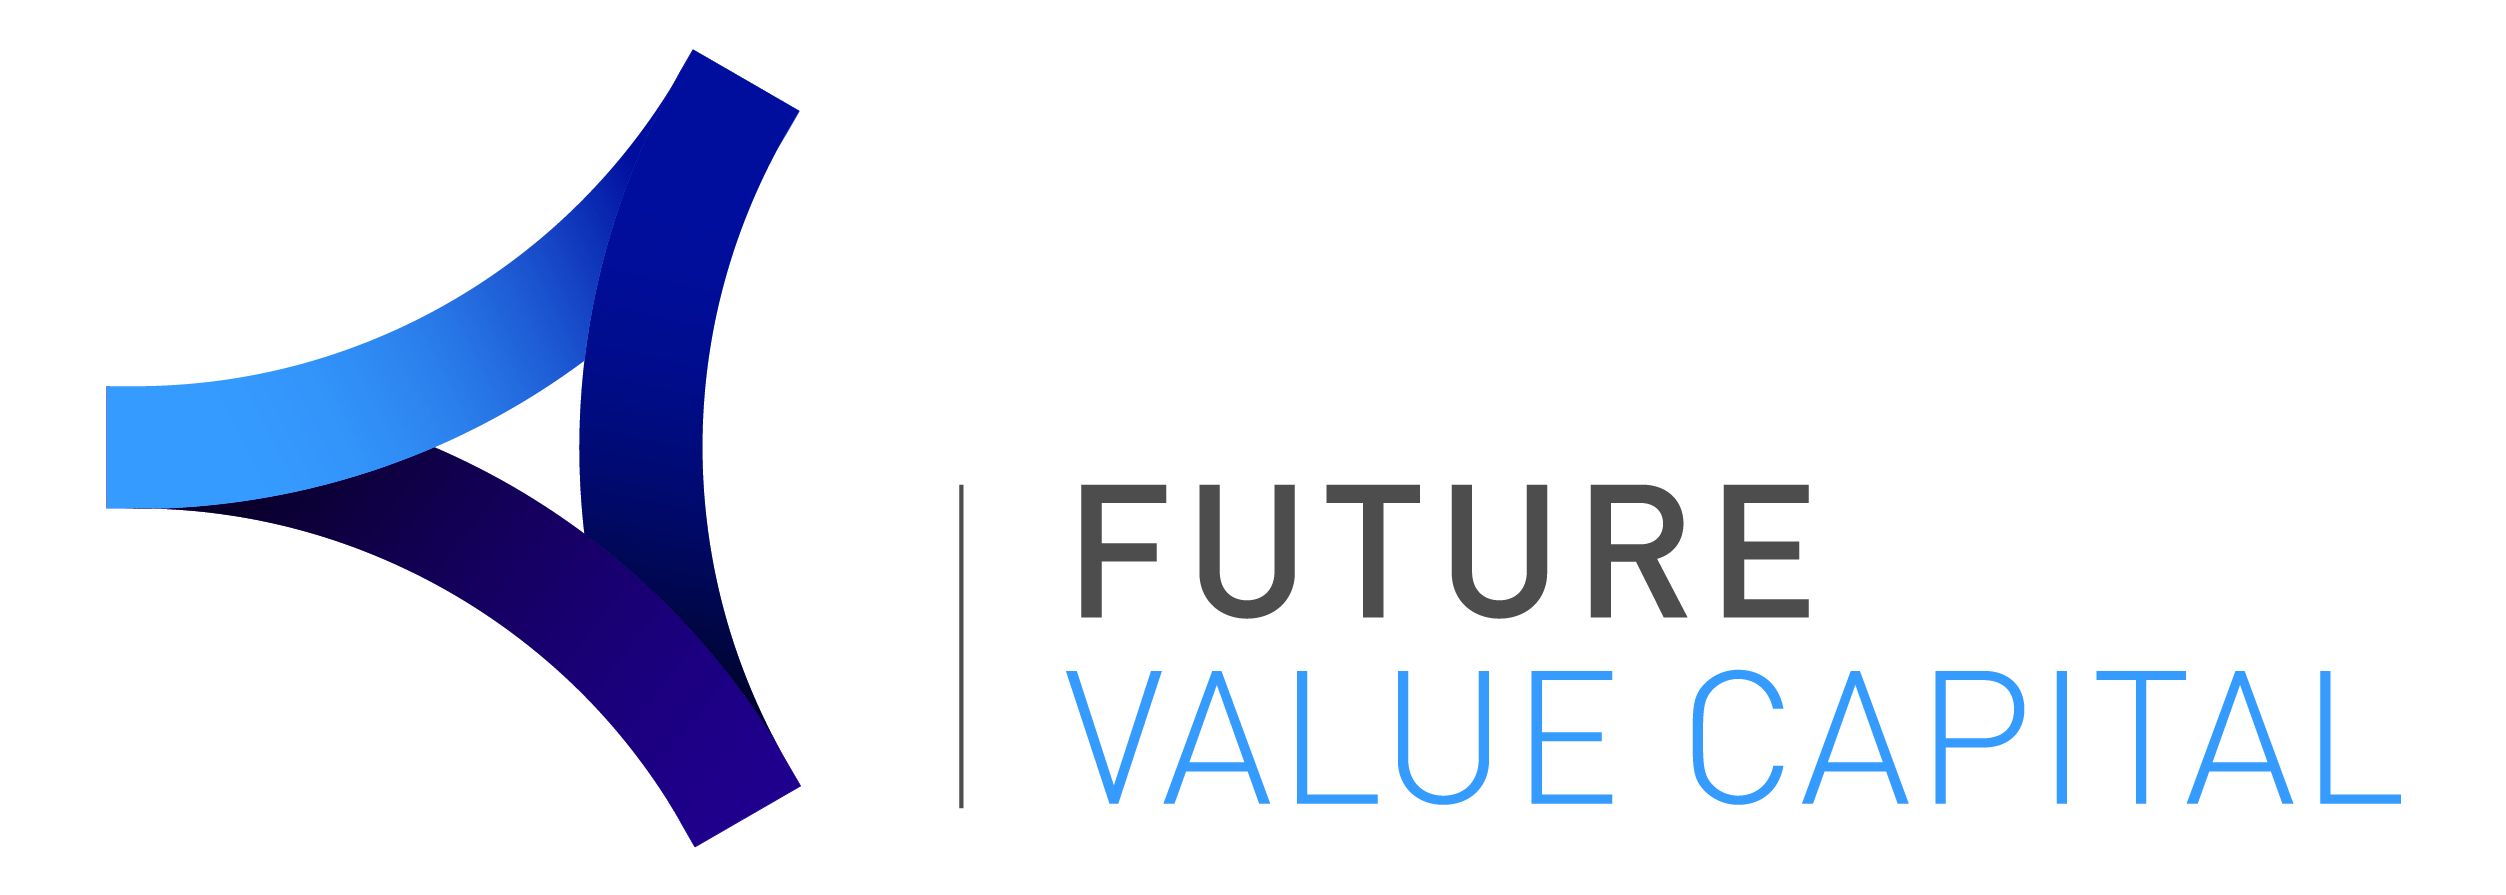 Logo Future Value Capital horizontal